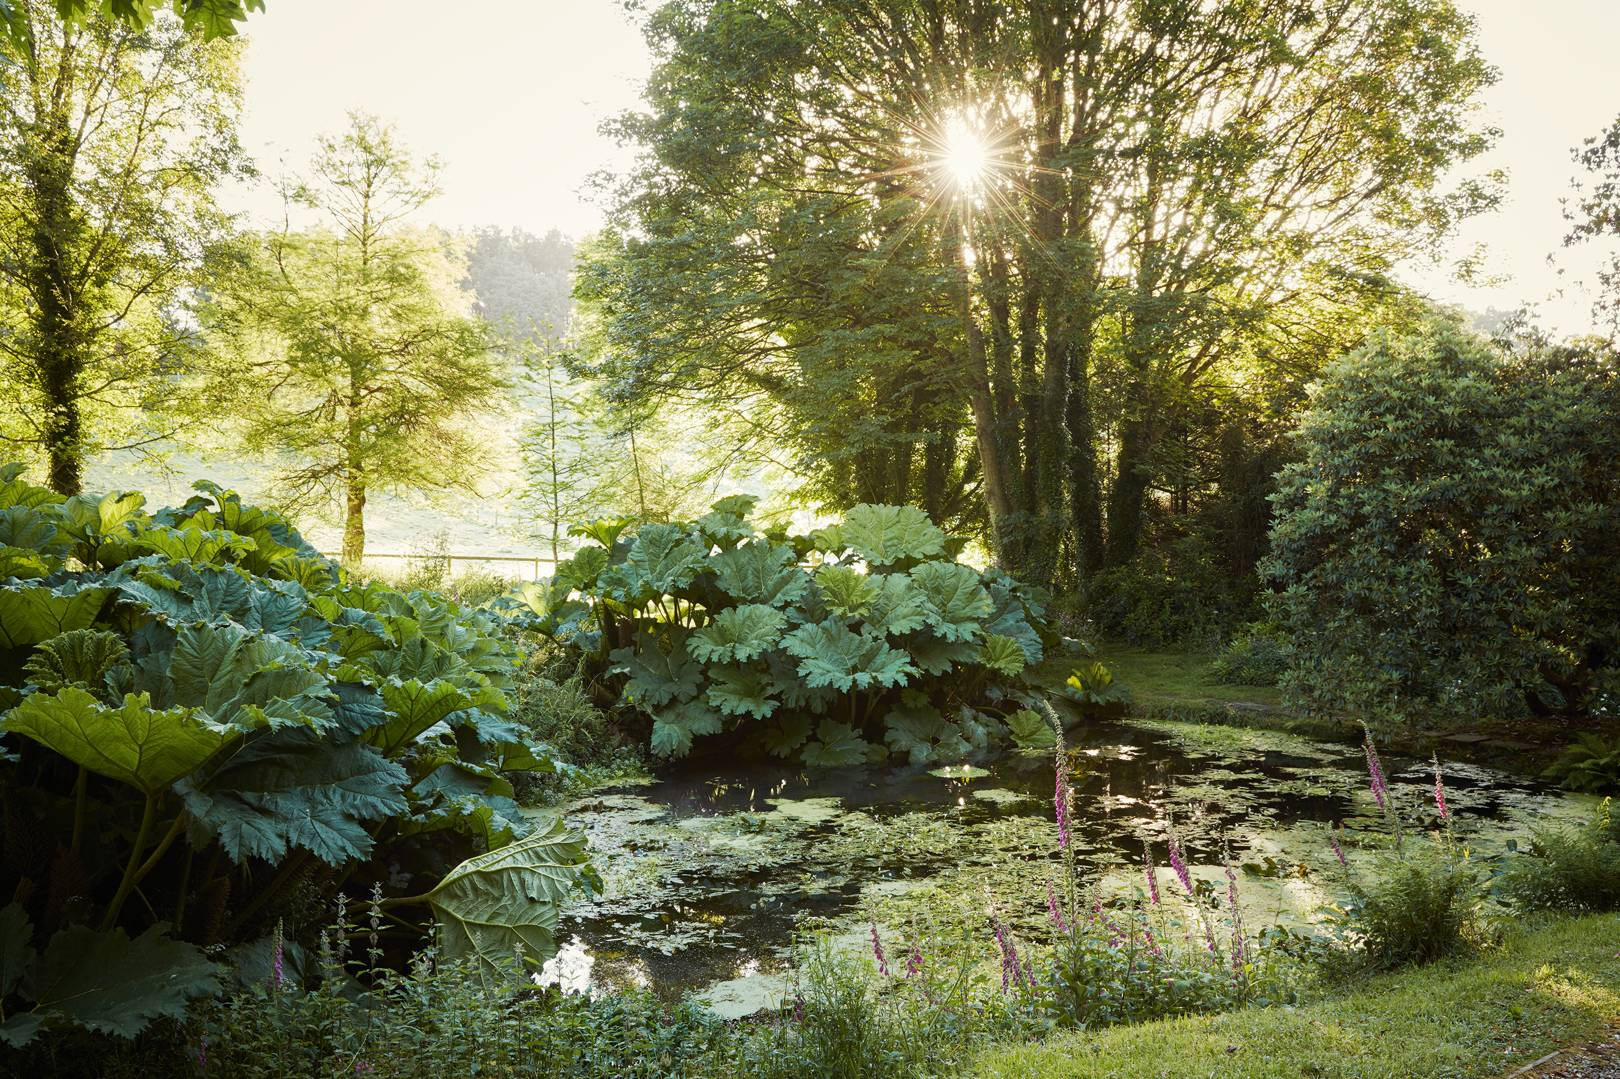 ROSE & IVY Journal Garden Dreamer | An Enchanting Garden in Devon, England